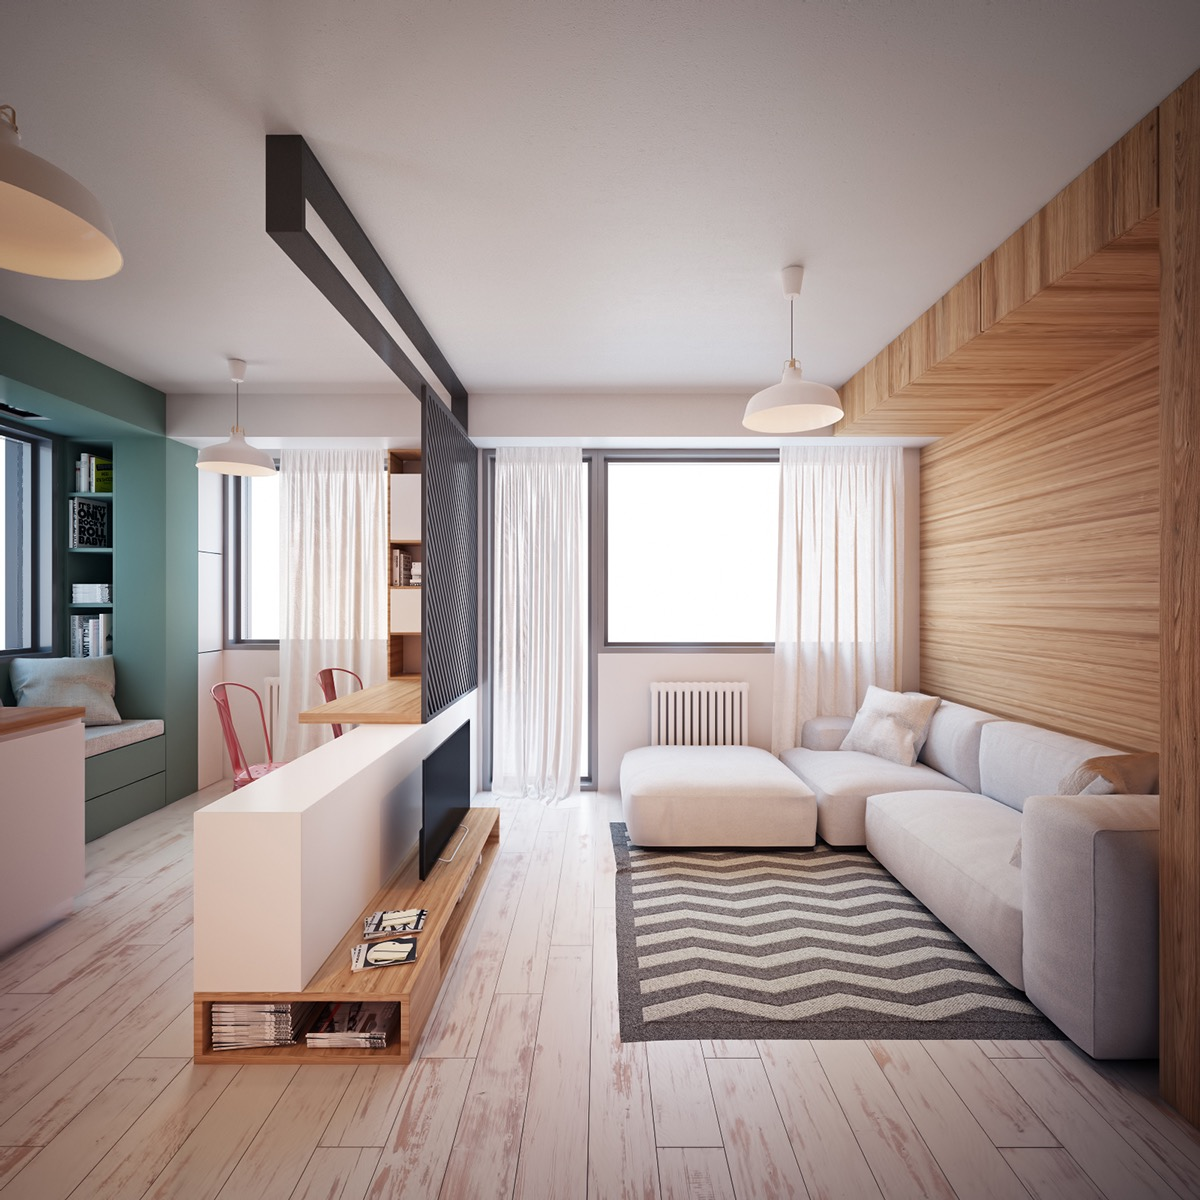 Ultra tiny home design 4 interiors under 40 square meters for De square design and interiors